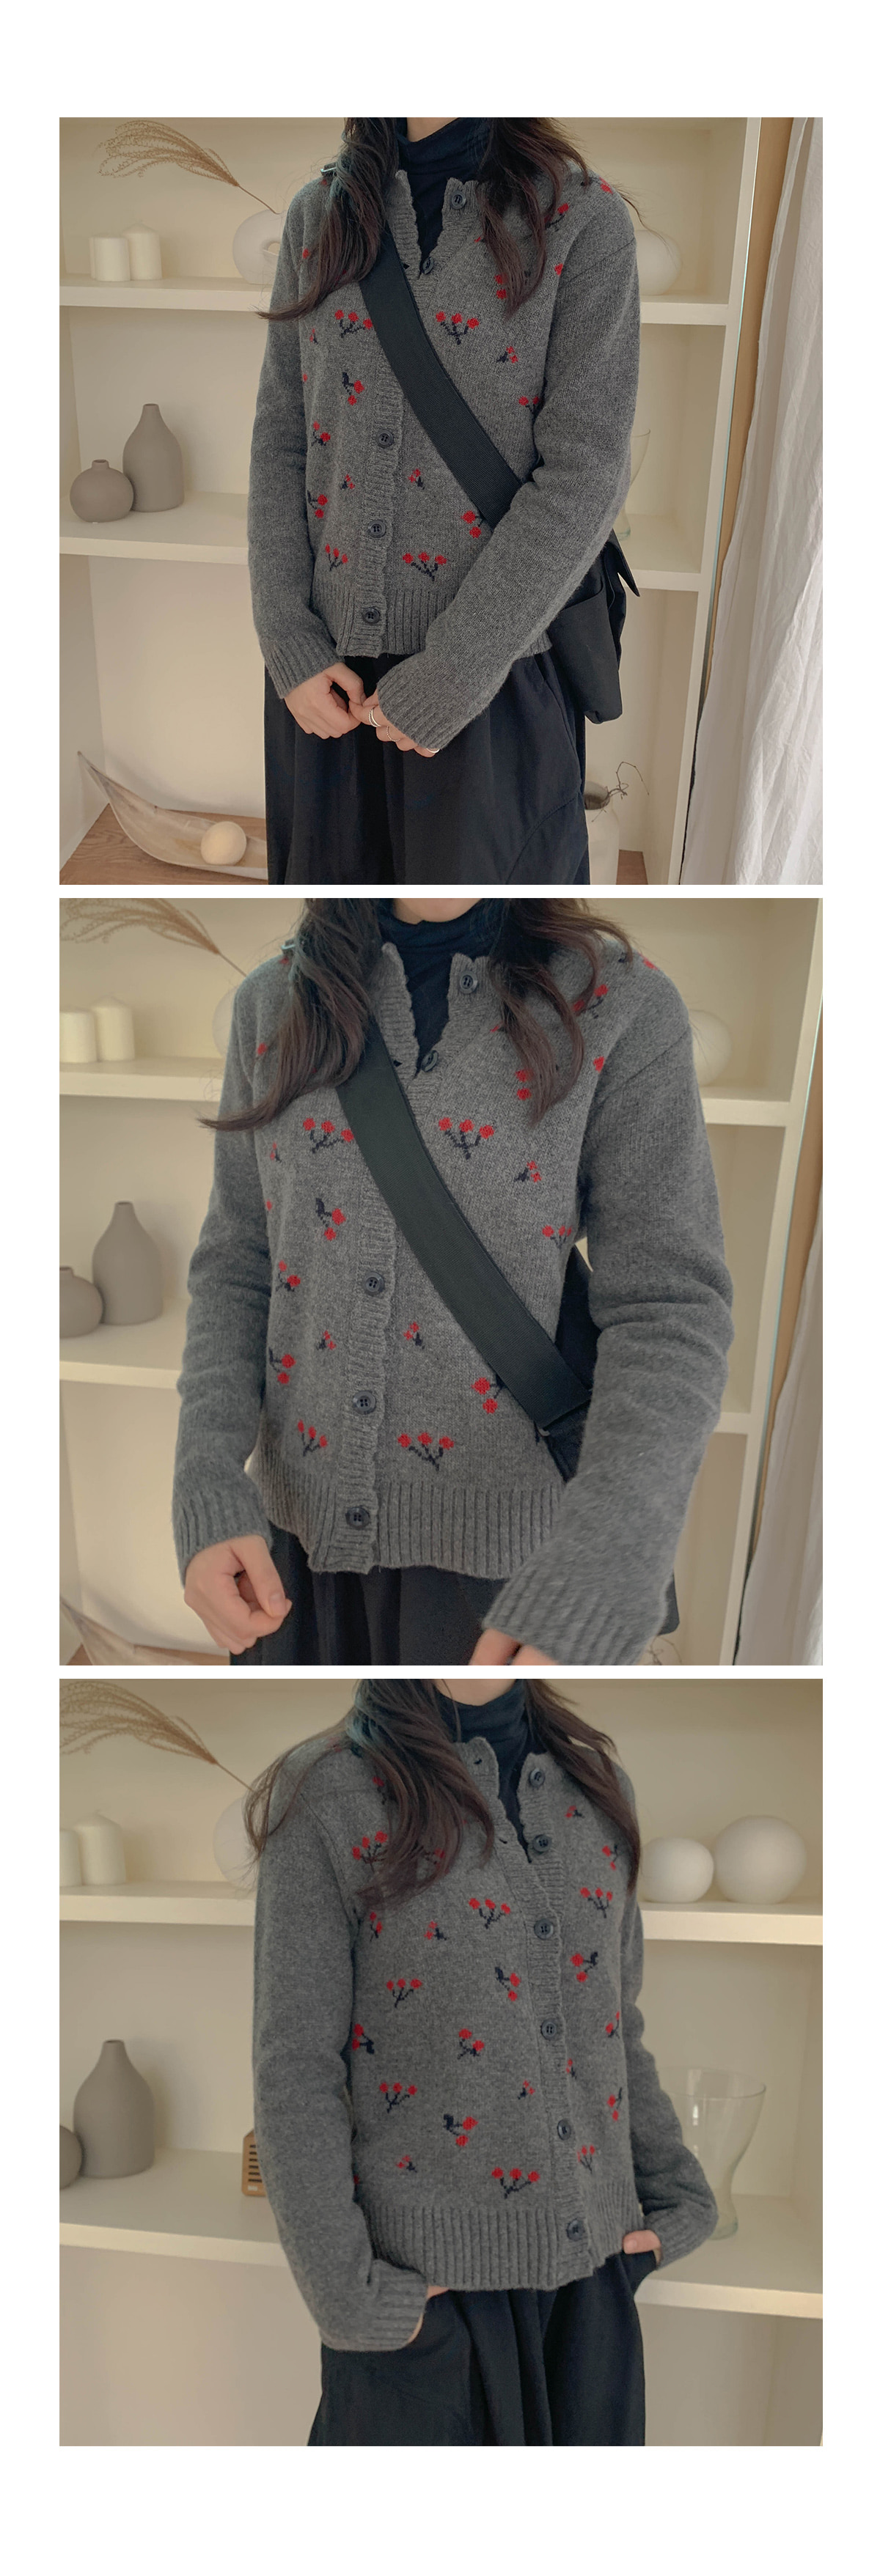 Cherry knit cardigan